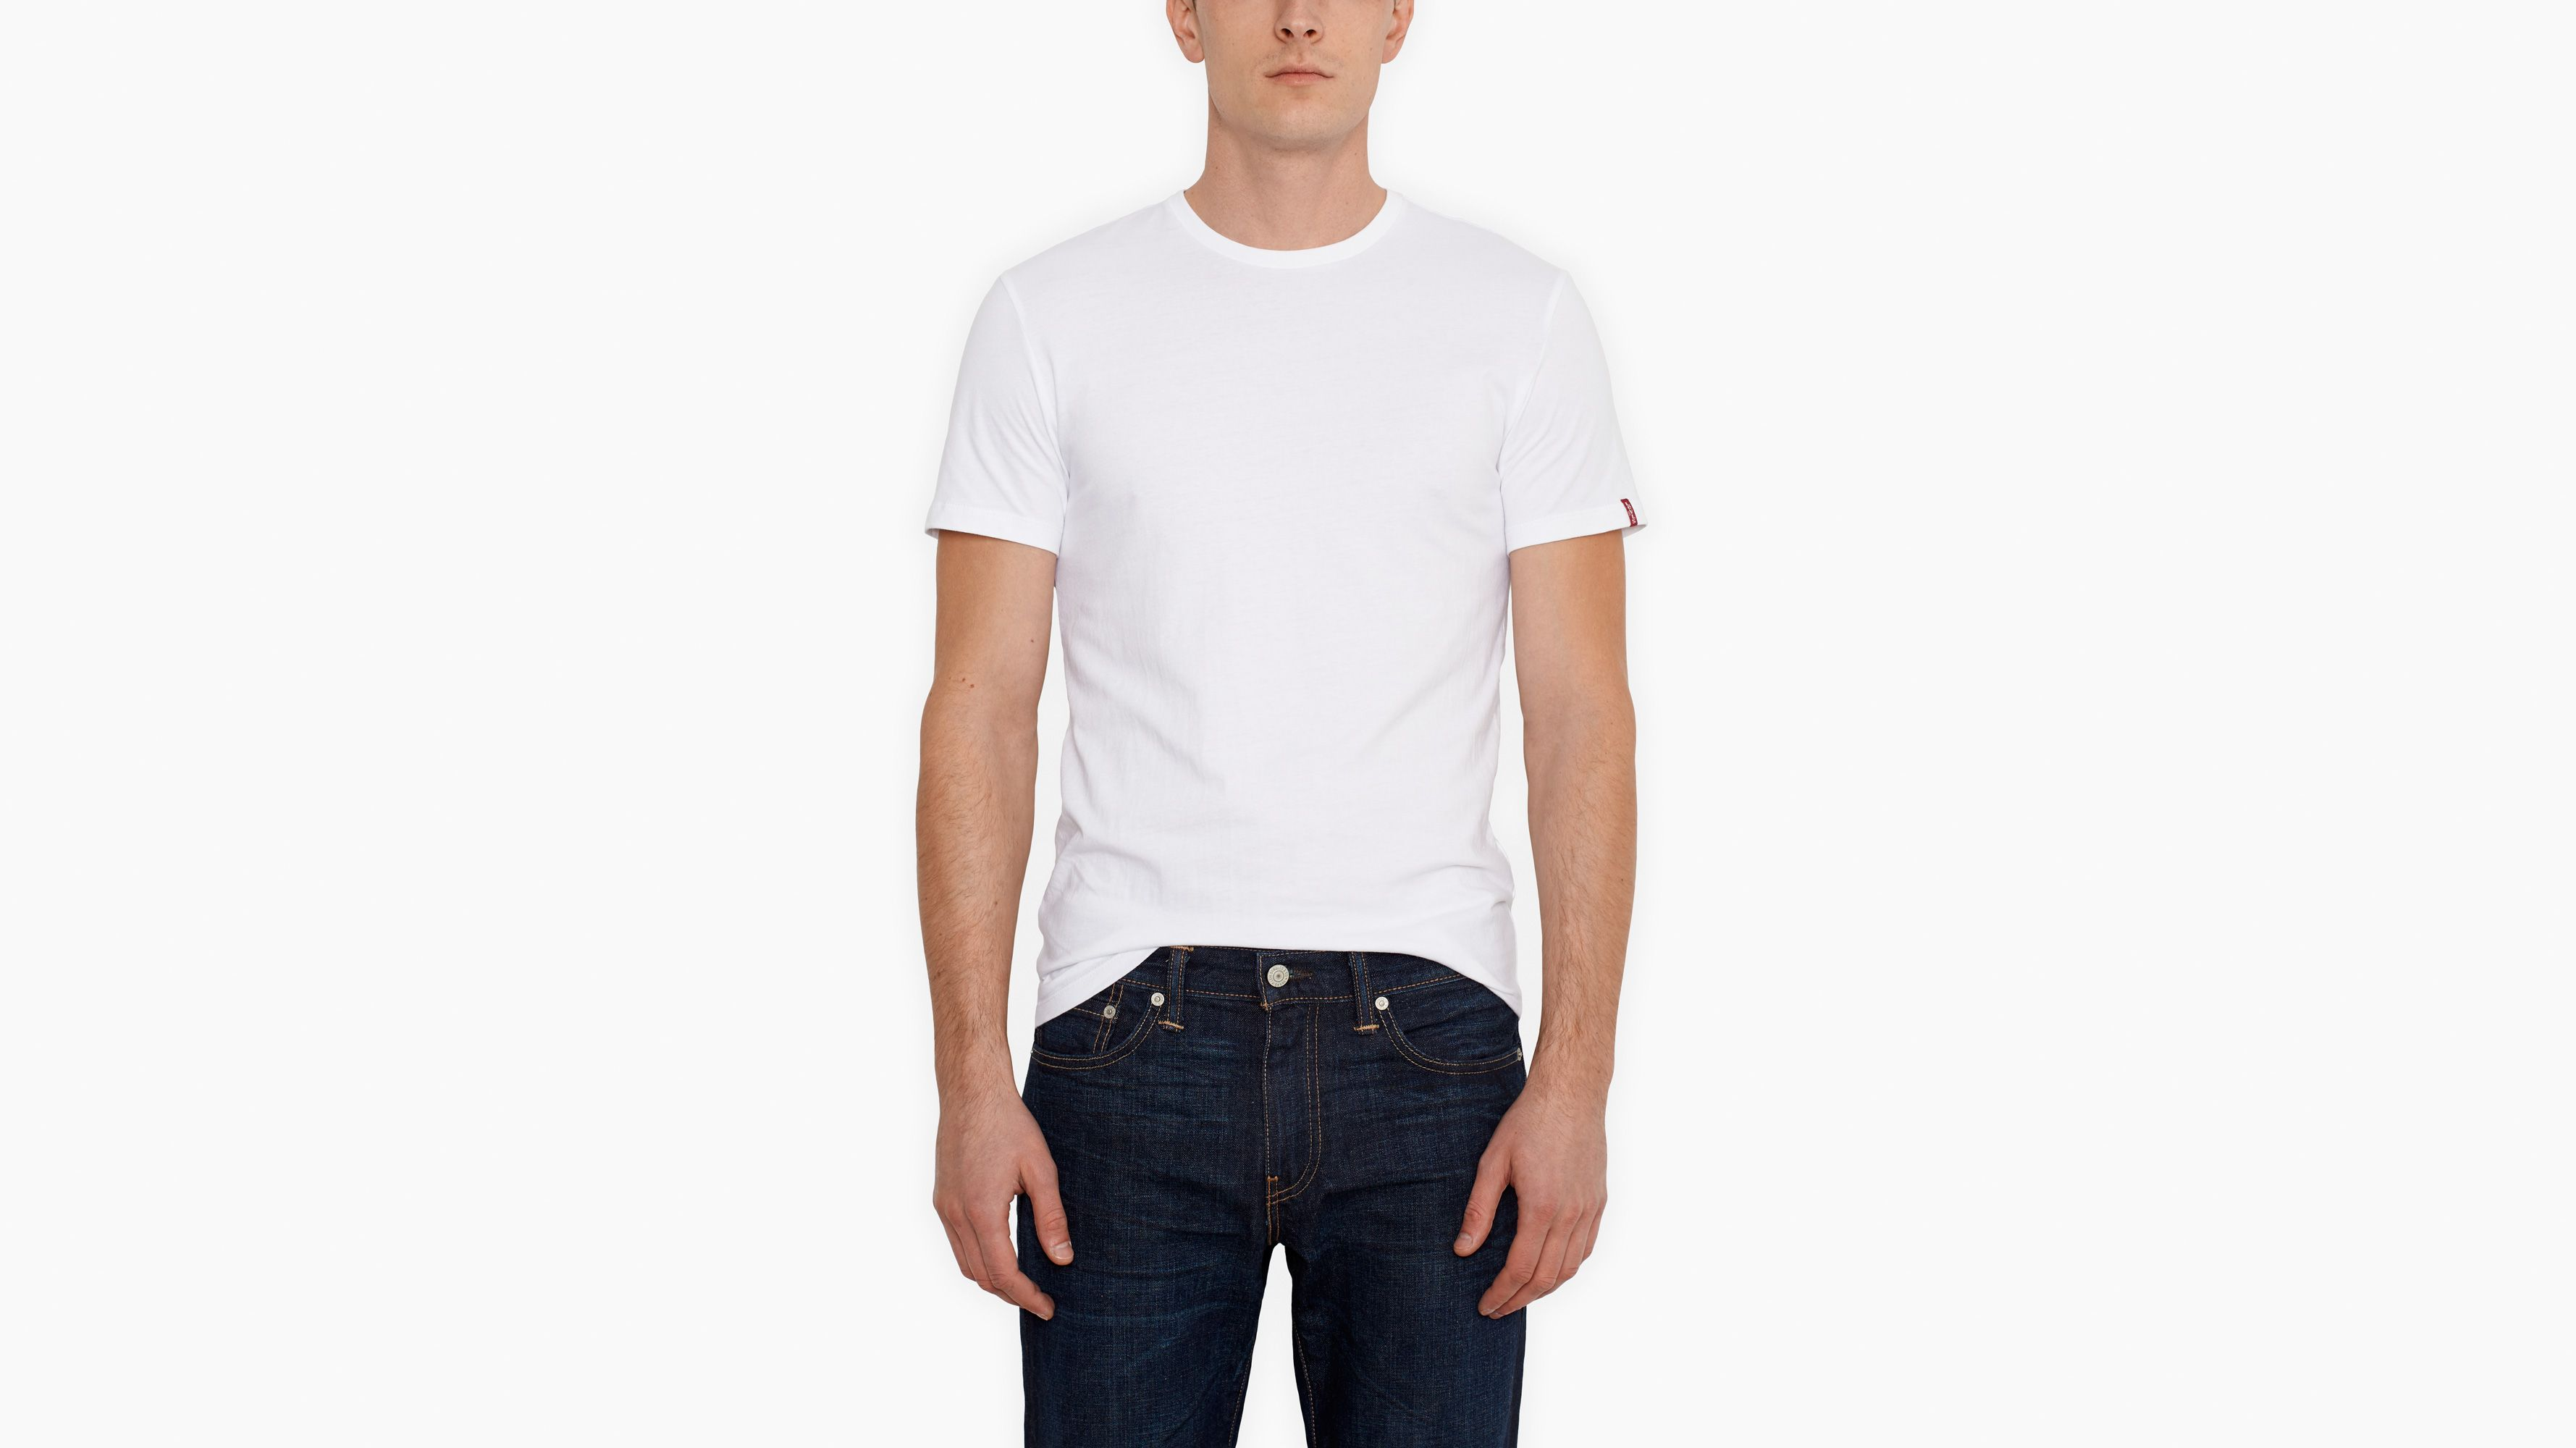 Slim Fit Tees (2-pack) - White